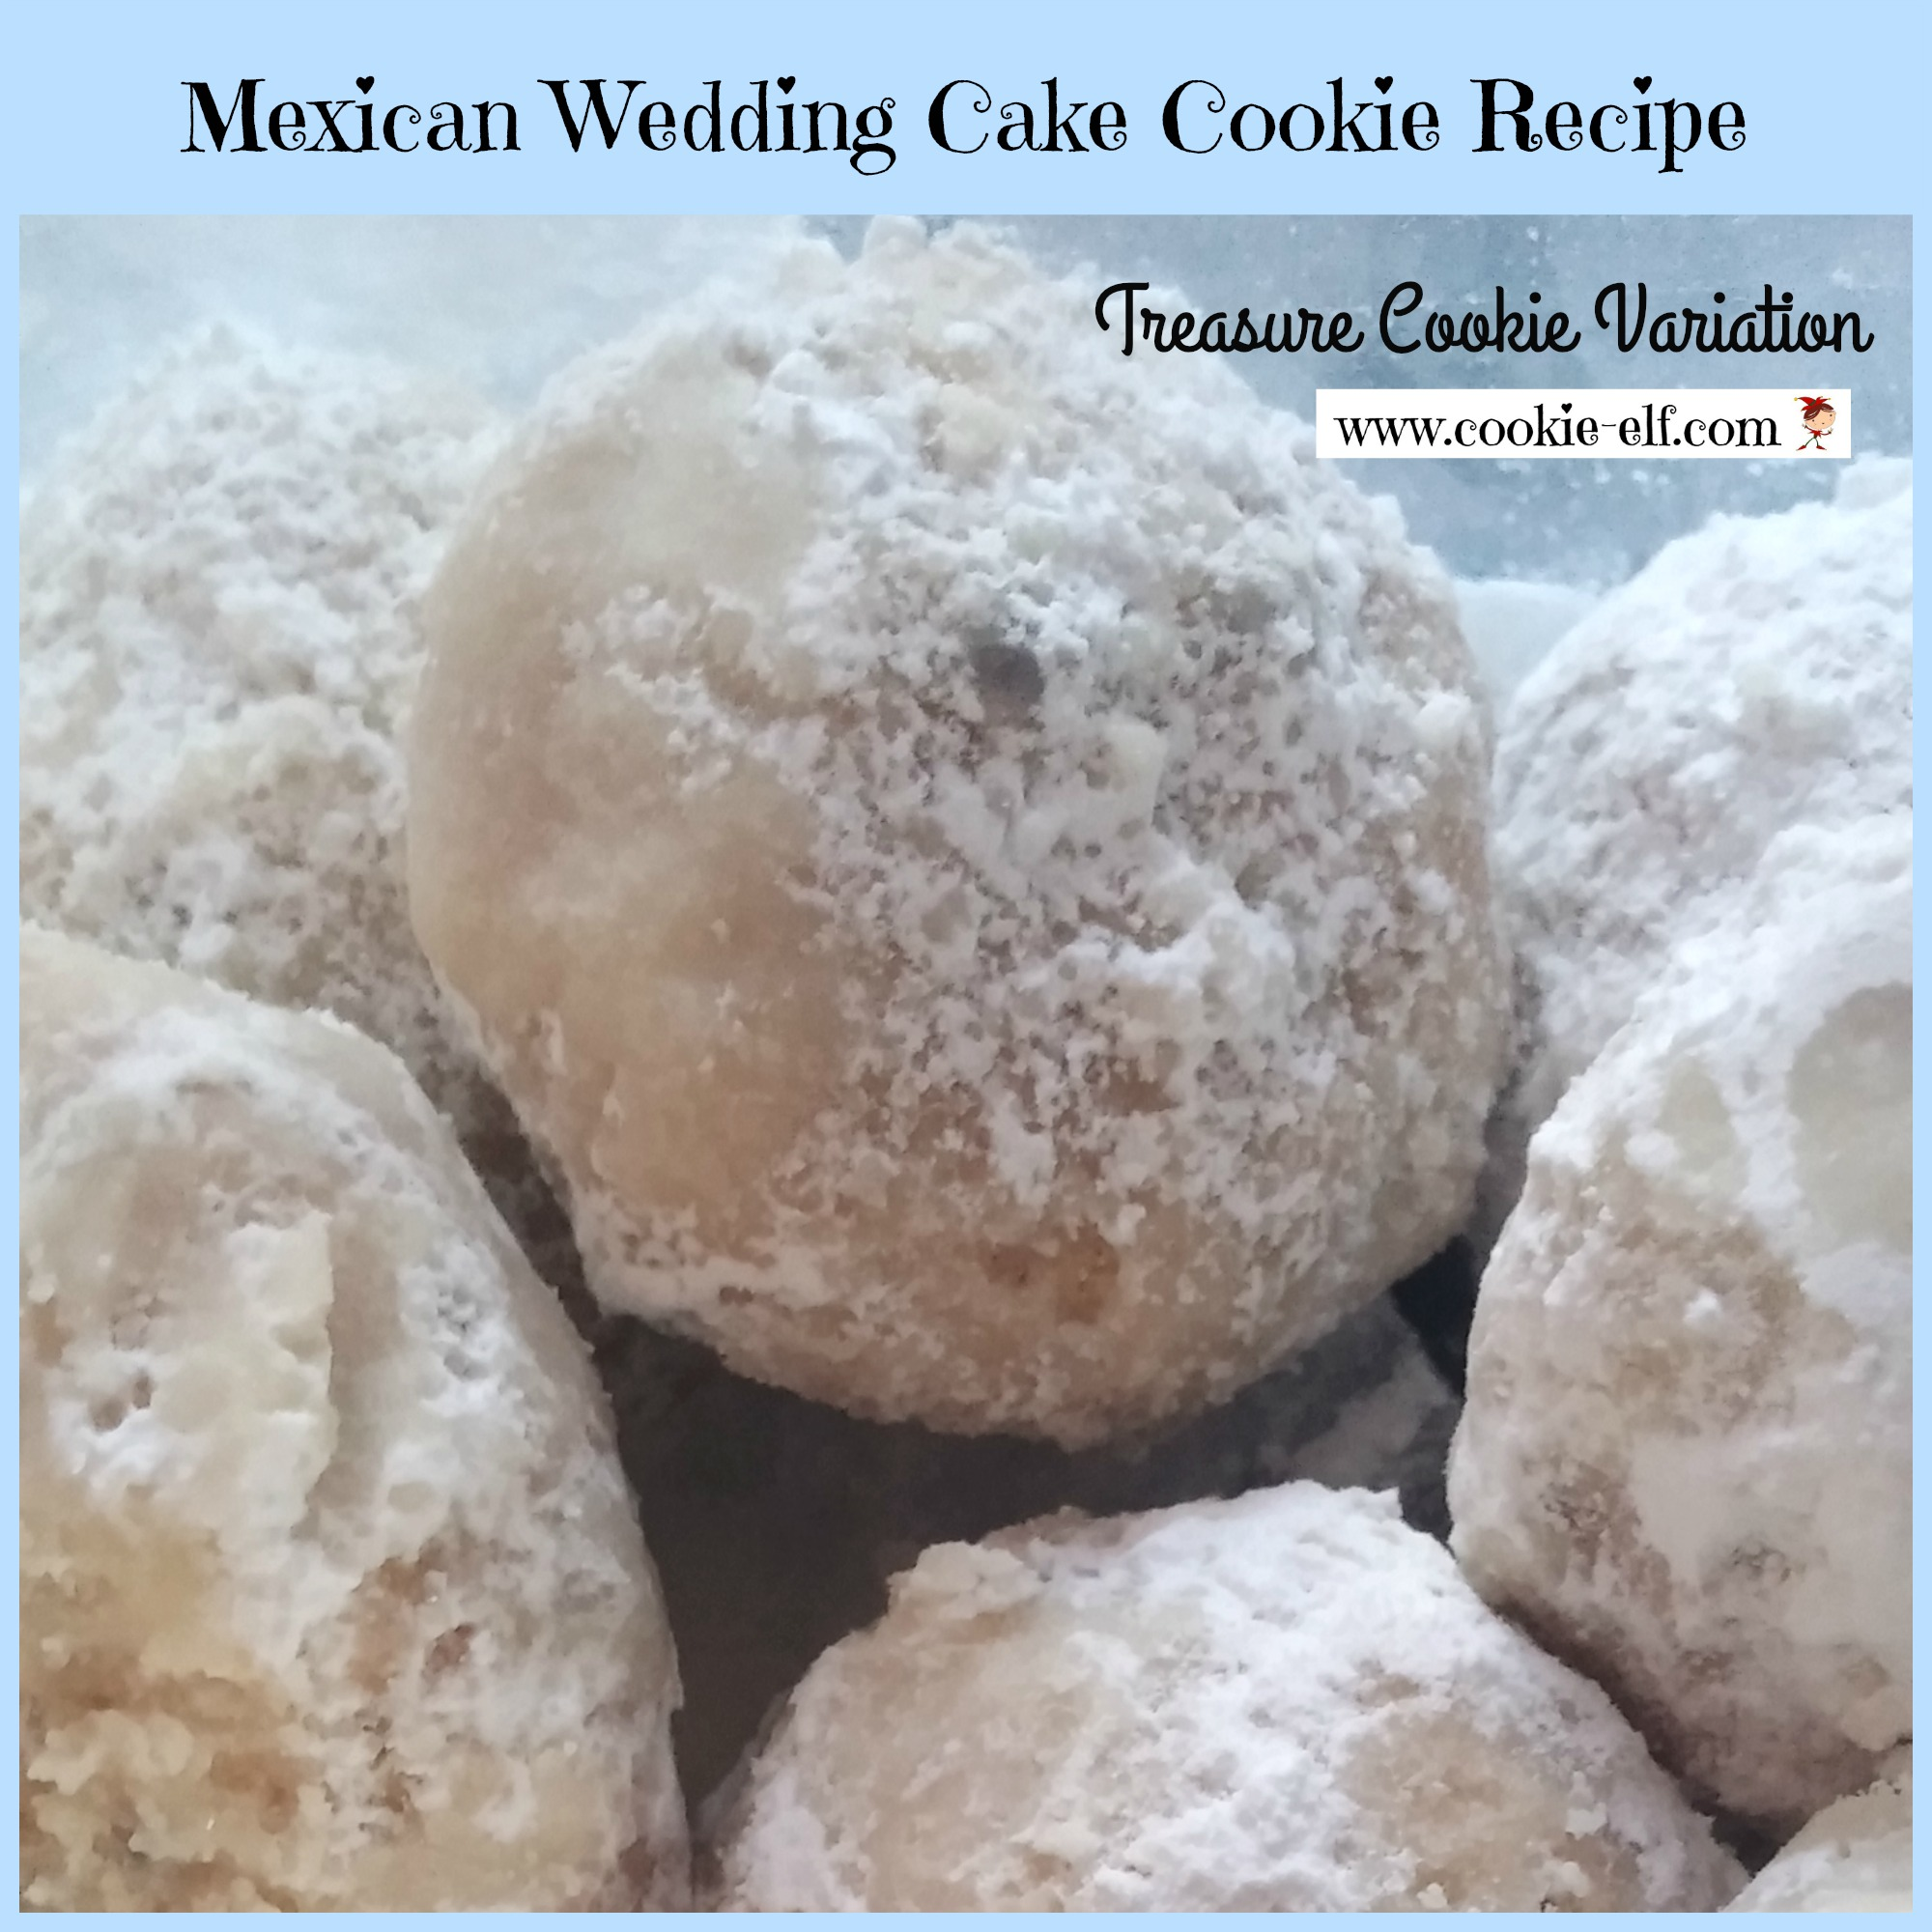 Mexican Wedding Cake Cookie Recipe Easy Treasure Cookies Variation